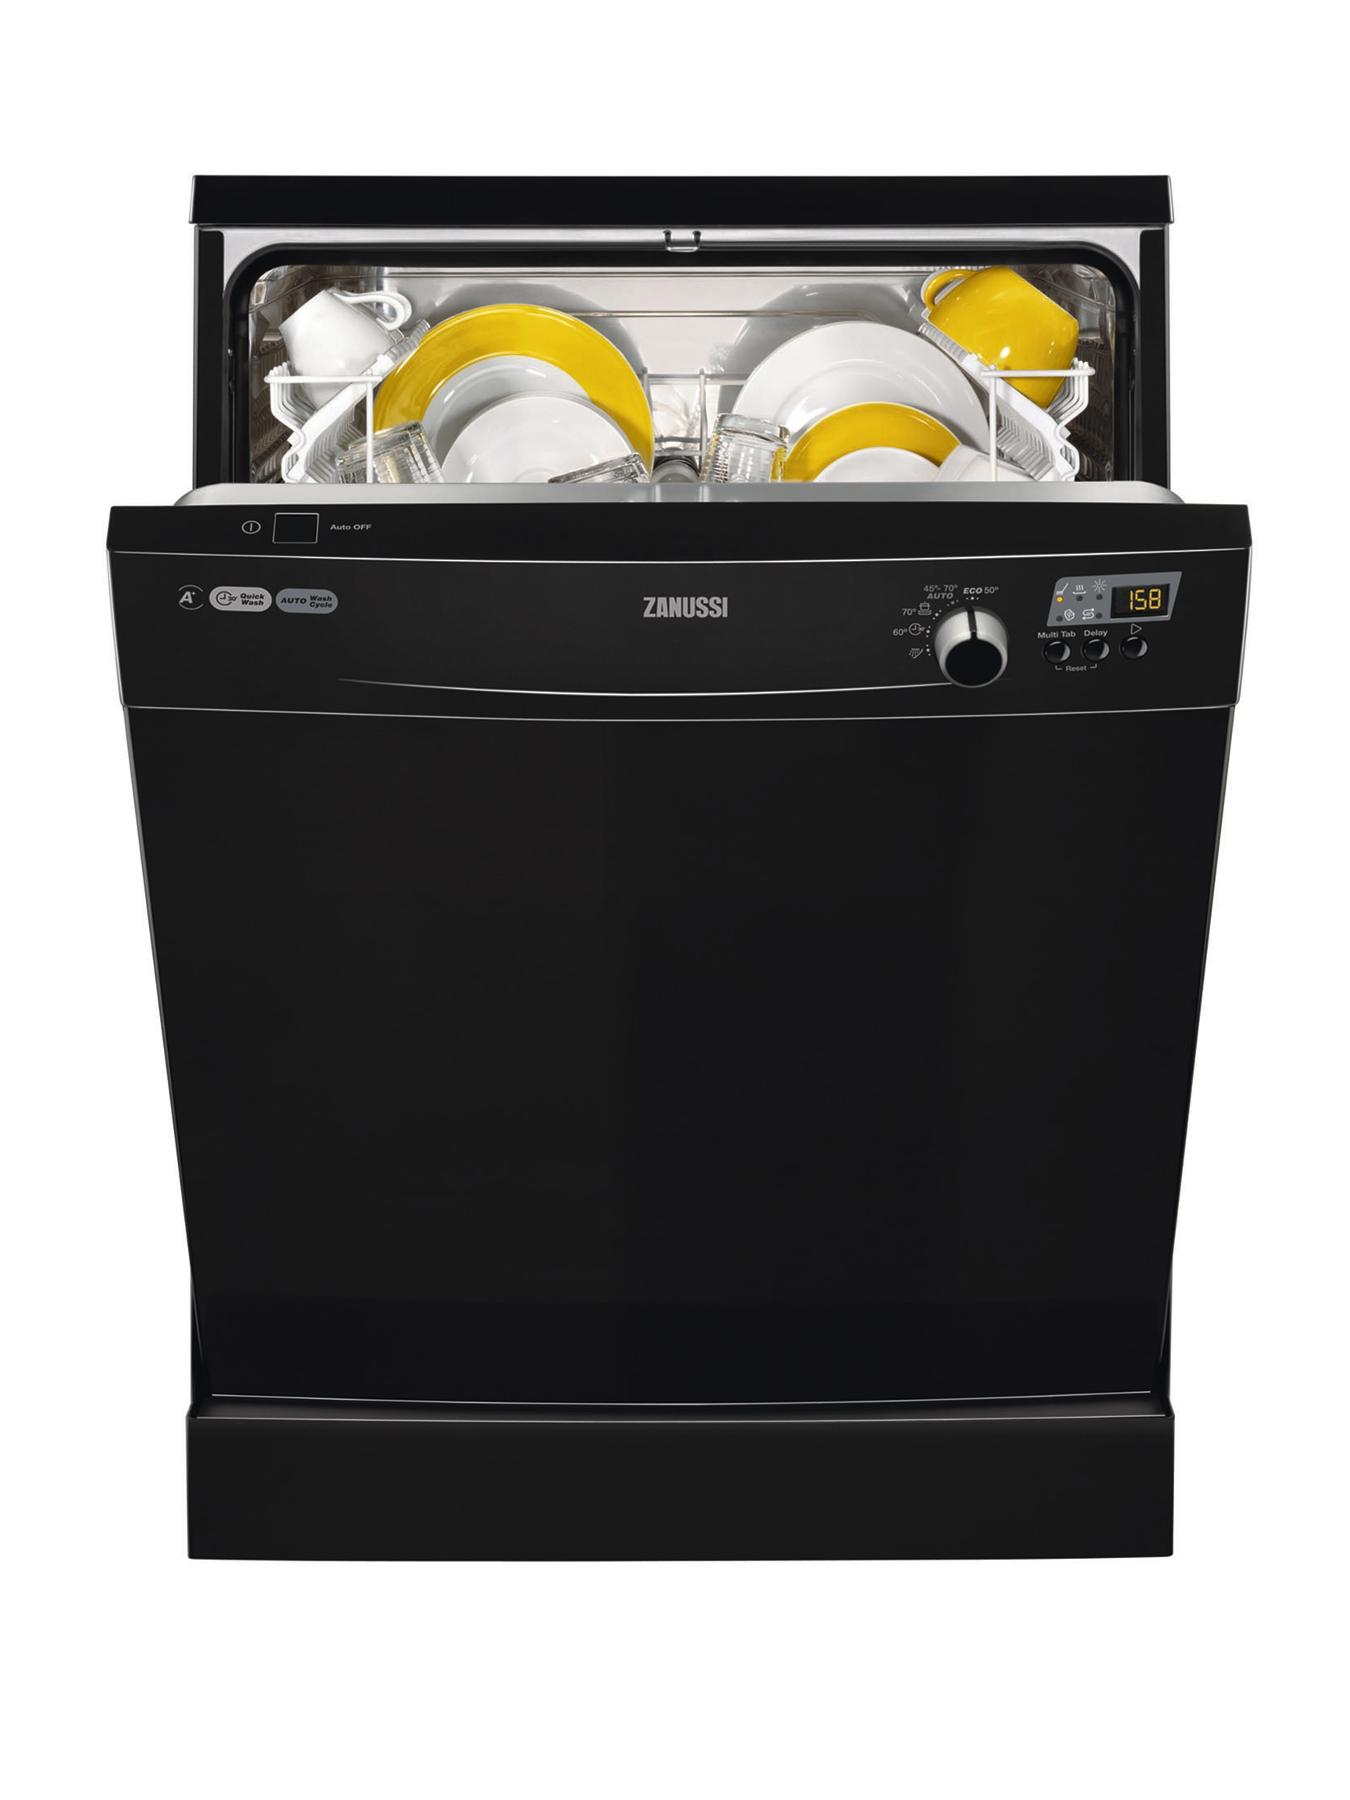 ZDF14001KA 12 Place Full Size Freestanding Dishwasher